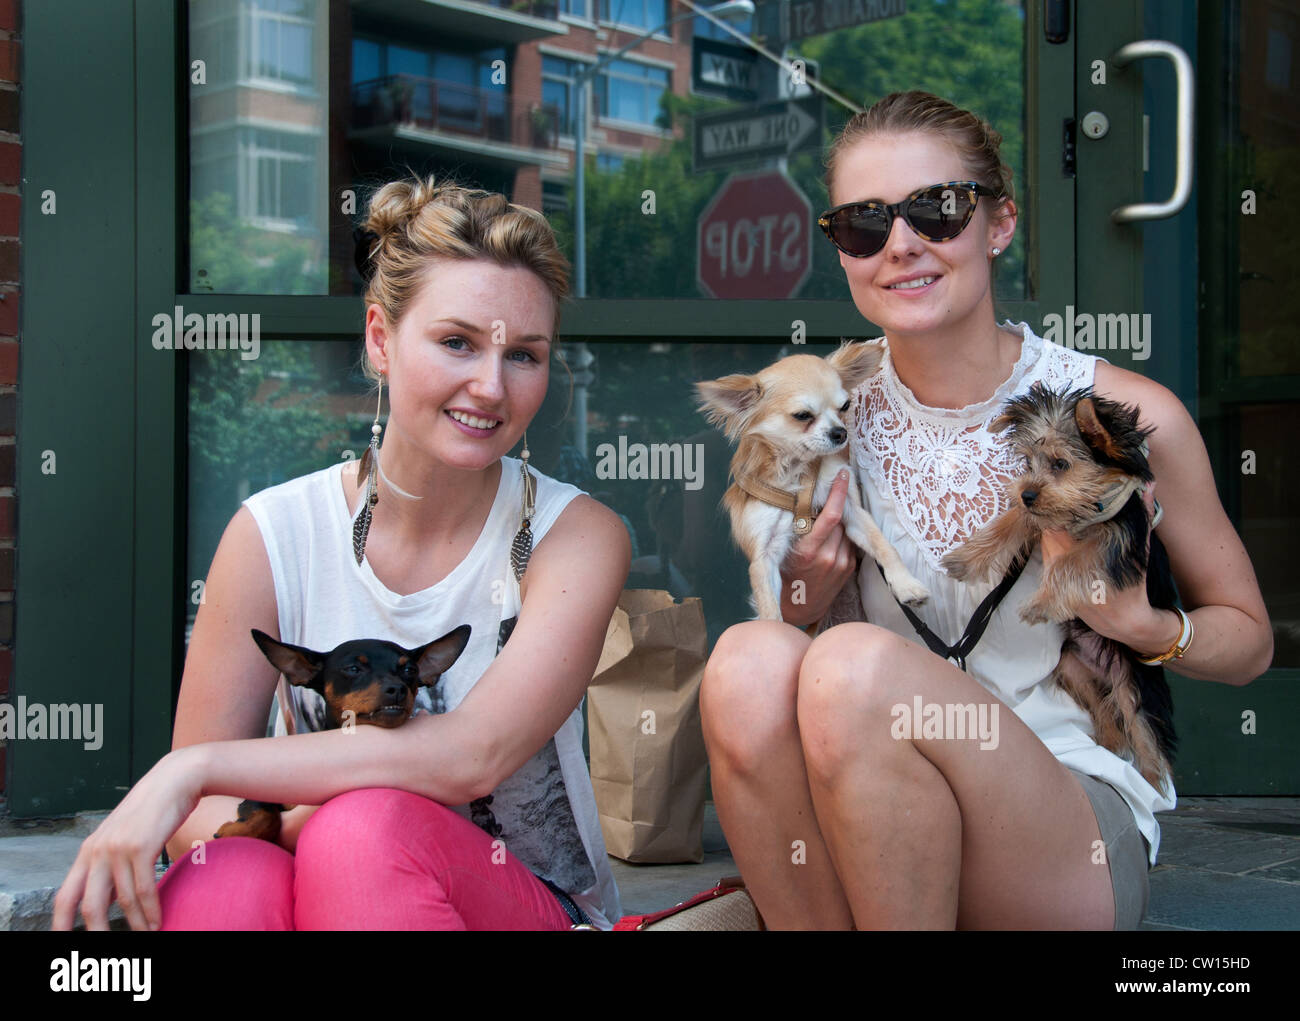 Young Girls Women small dogs West Village Manhattan New York City United States of America - Stock Image